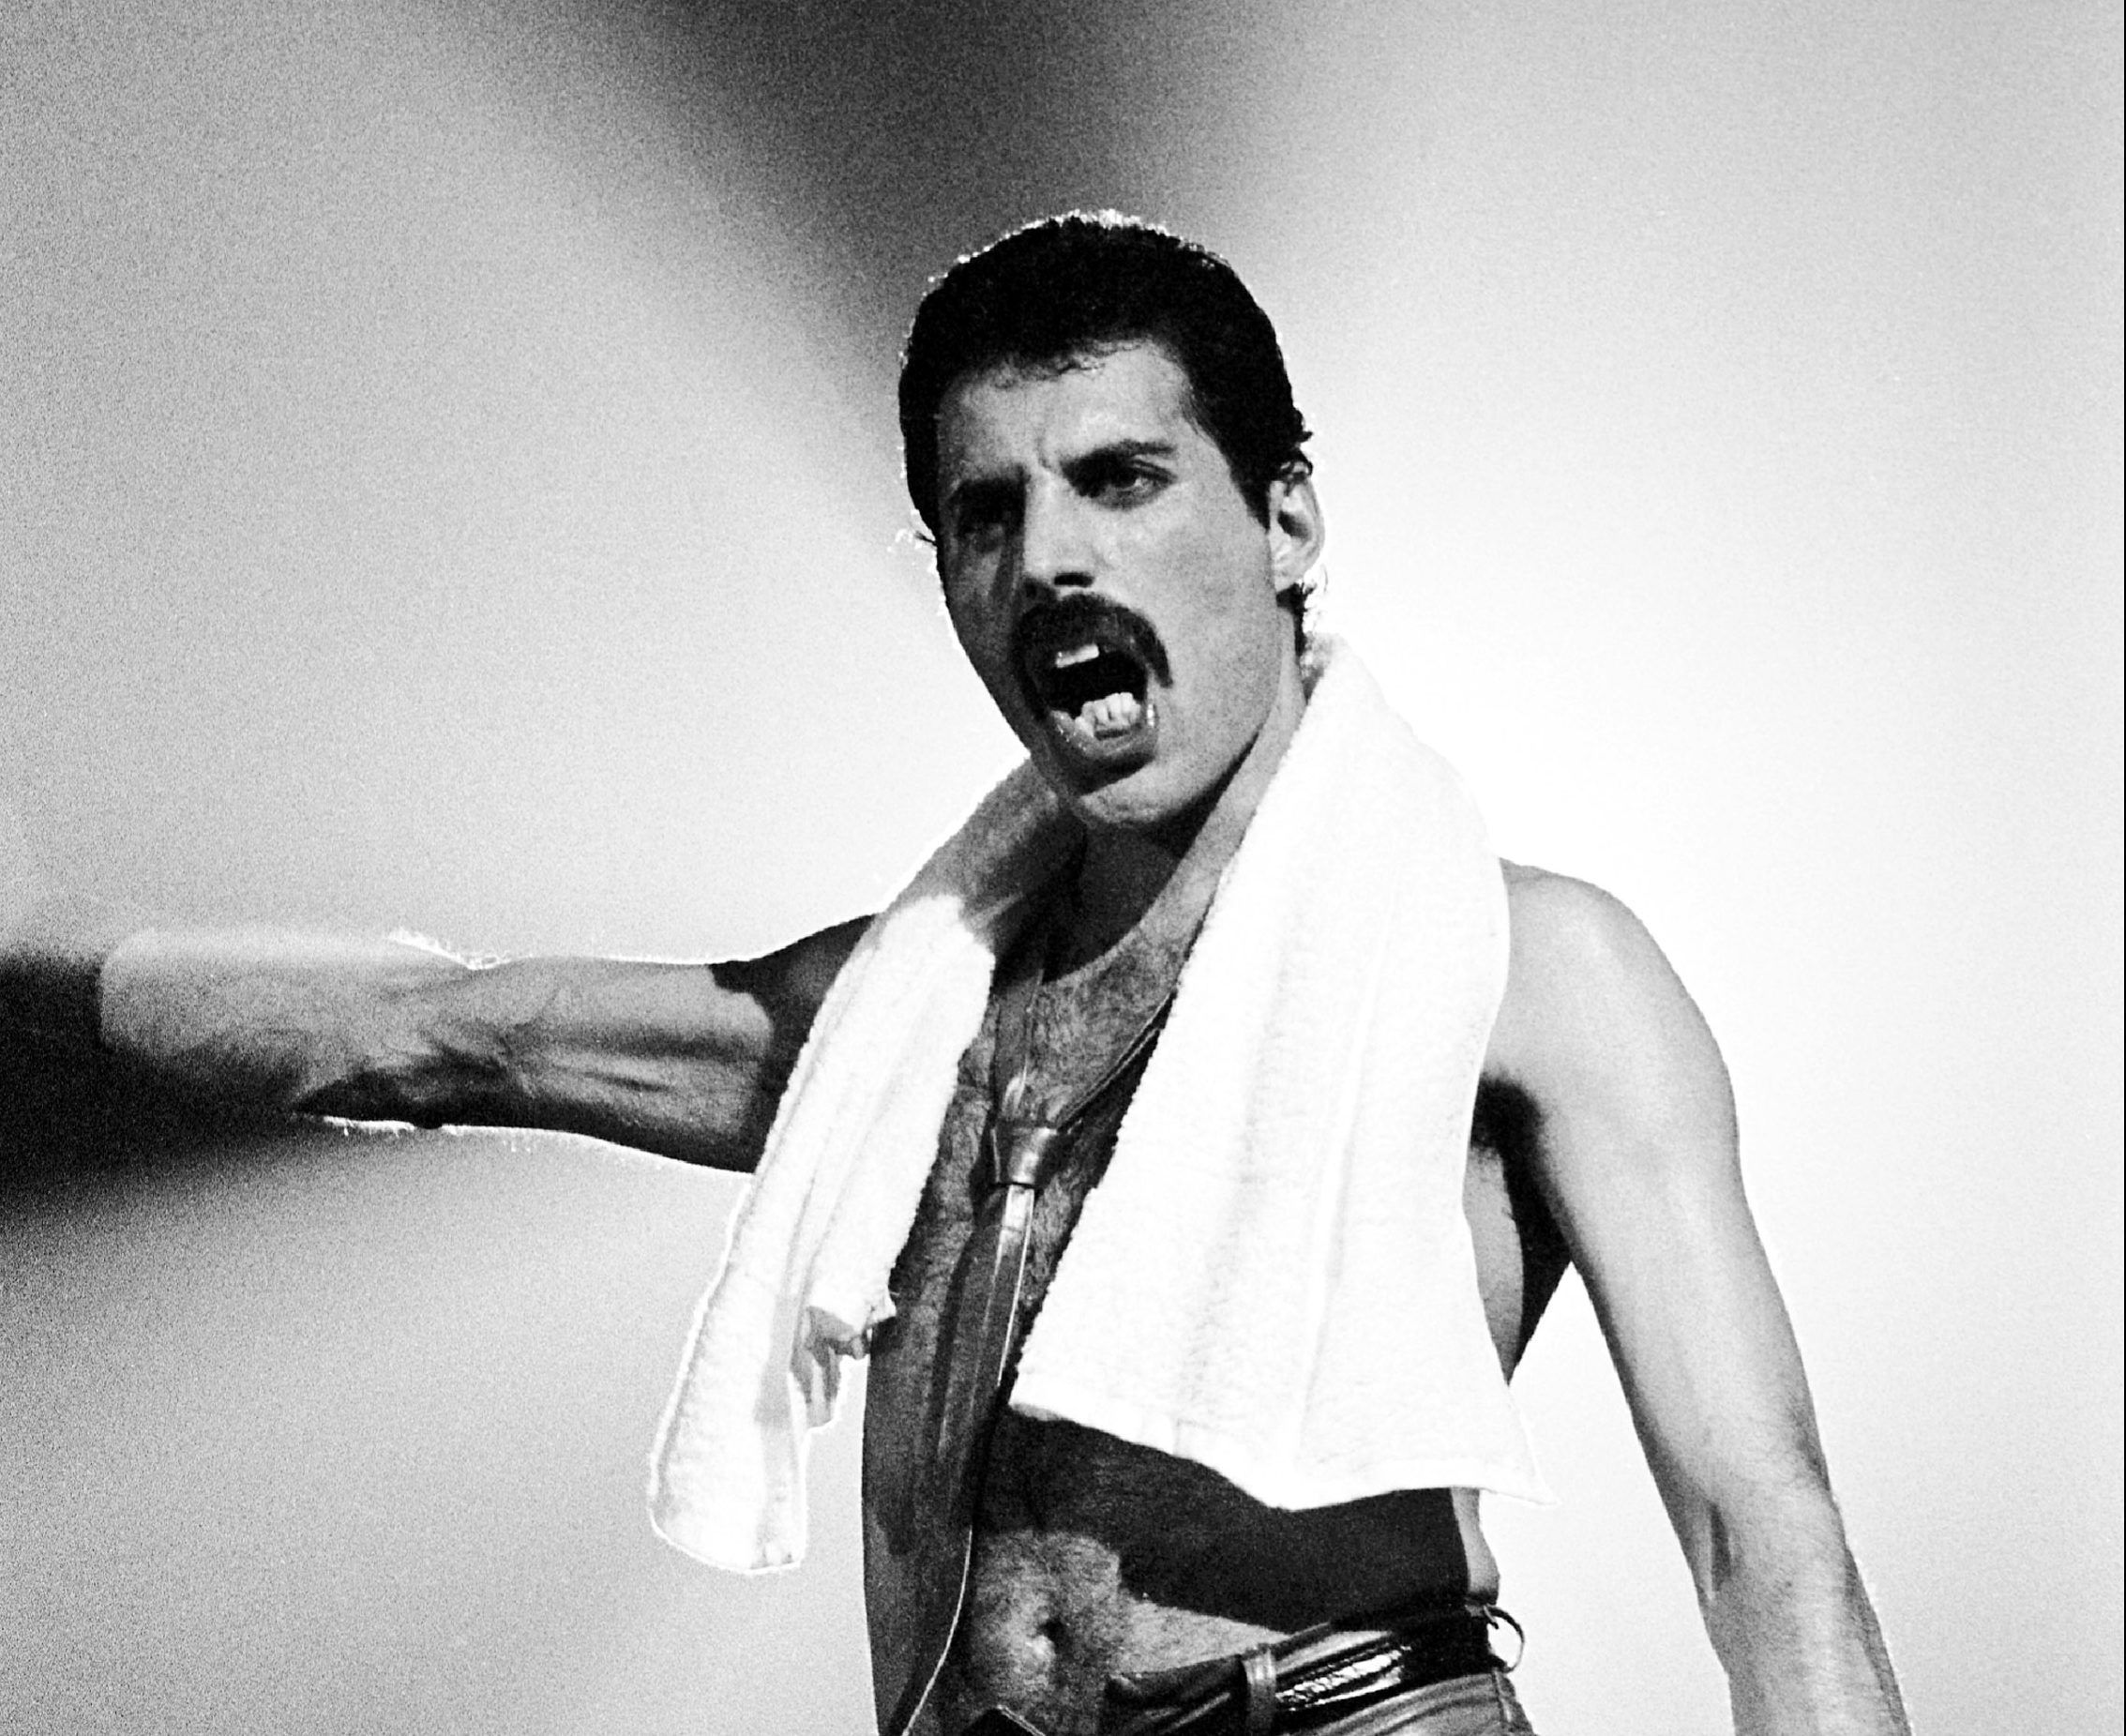 freddie mercury - photo #36